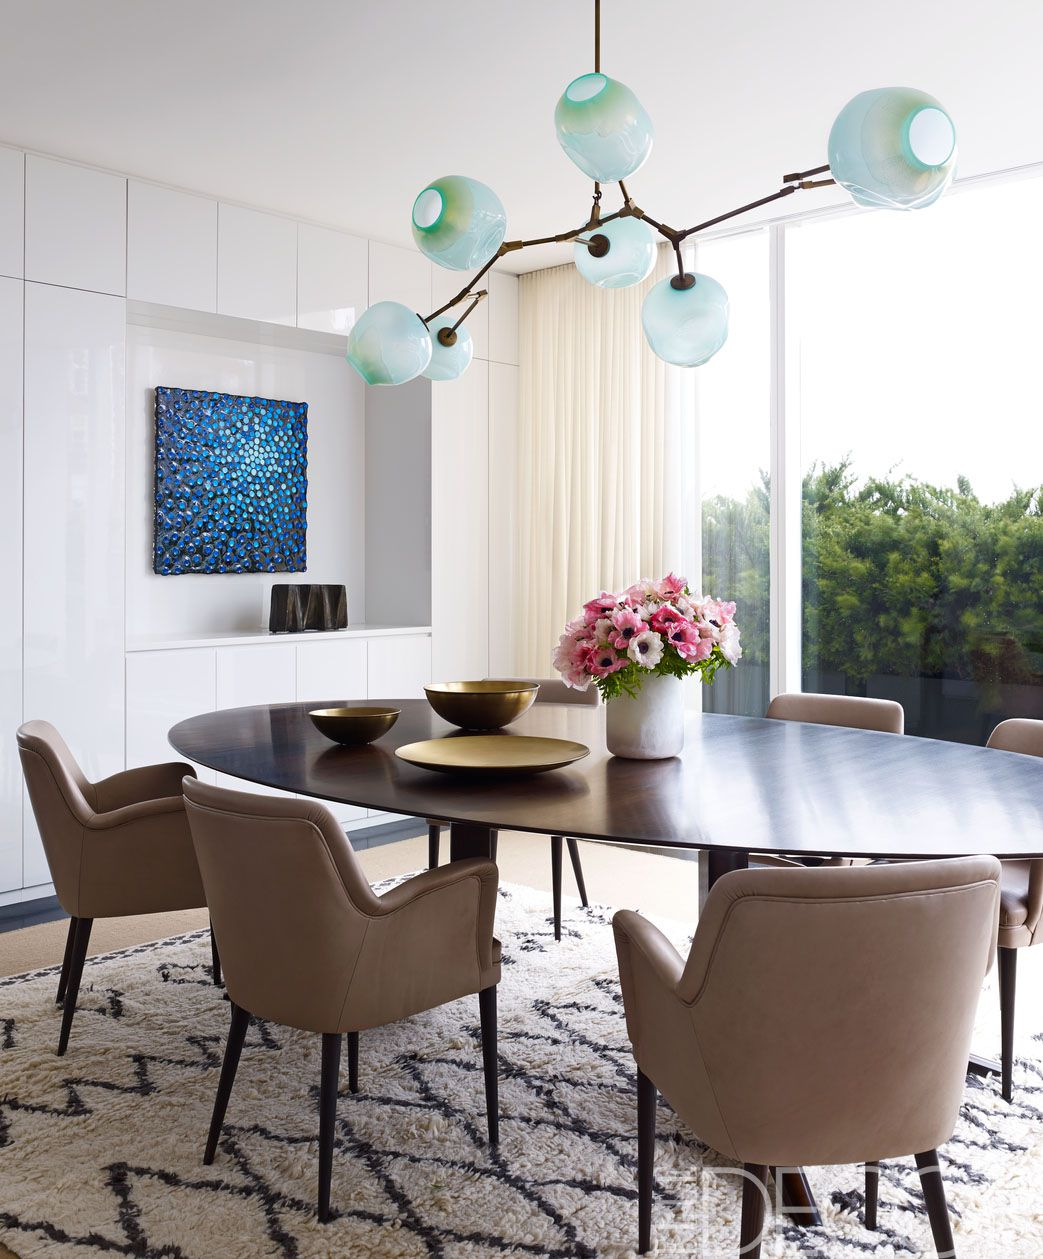 25 Modern Dining Room Decorating Ideas - Contemporary Dining Room